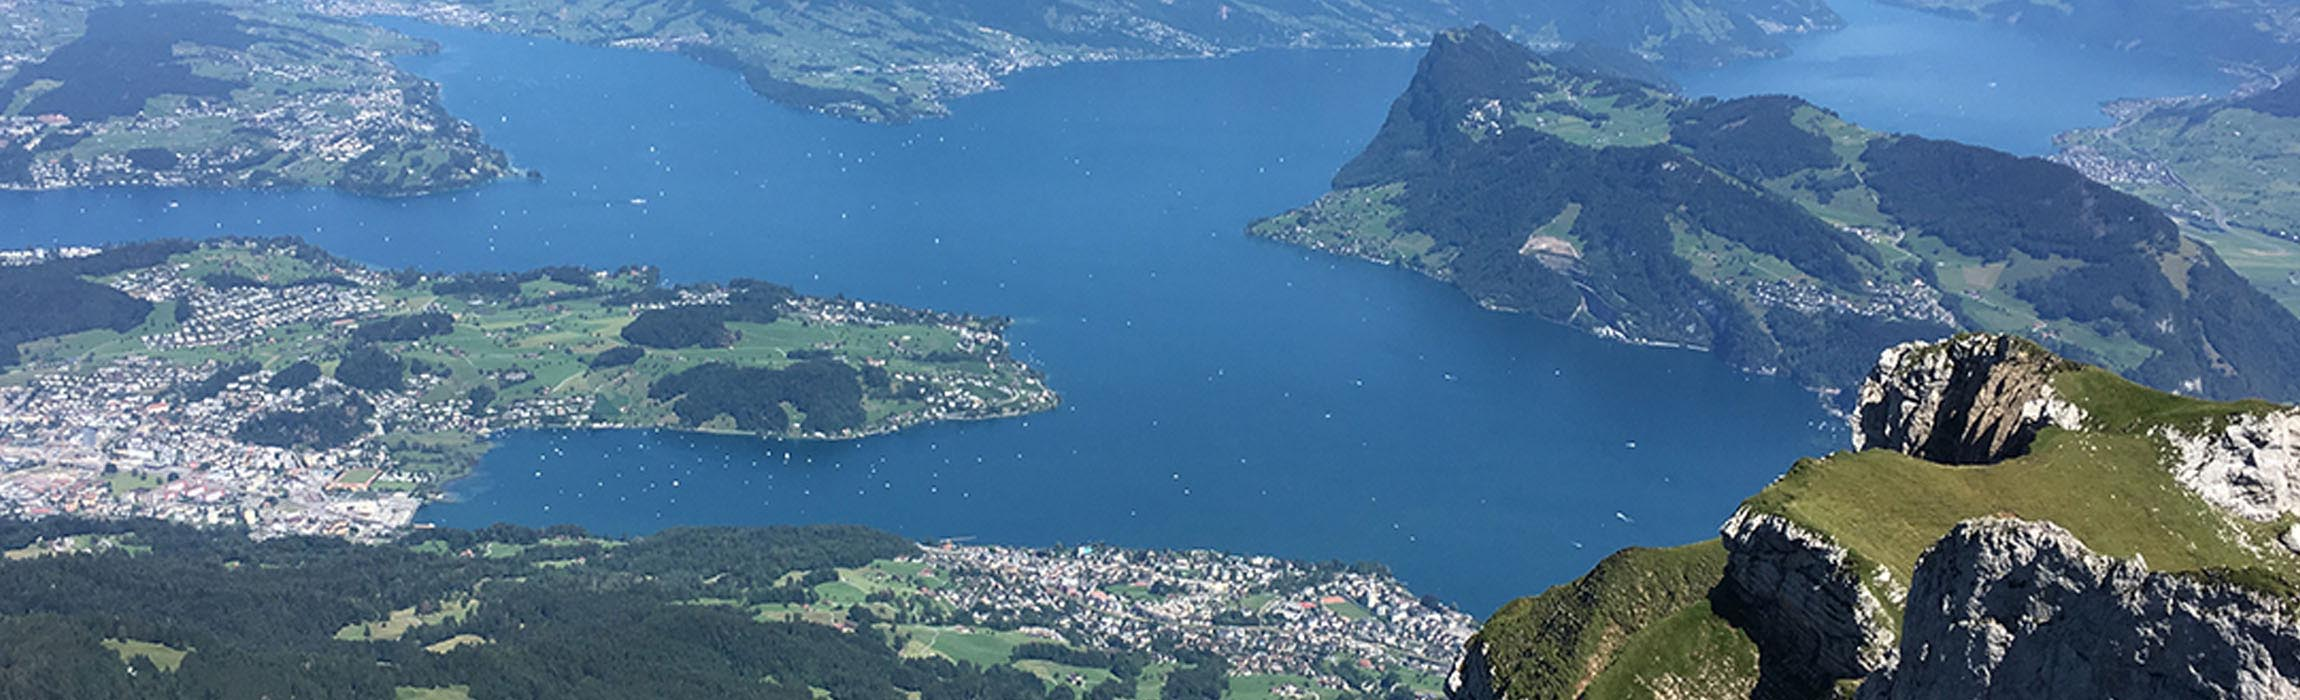 TGW Insights: Sascha D. talks about his expirience during the expat in switzerland.